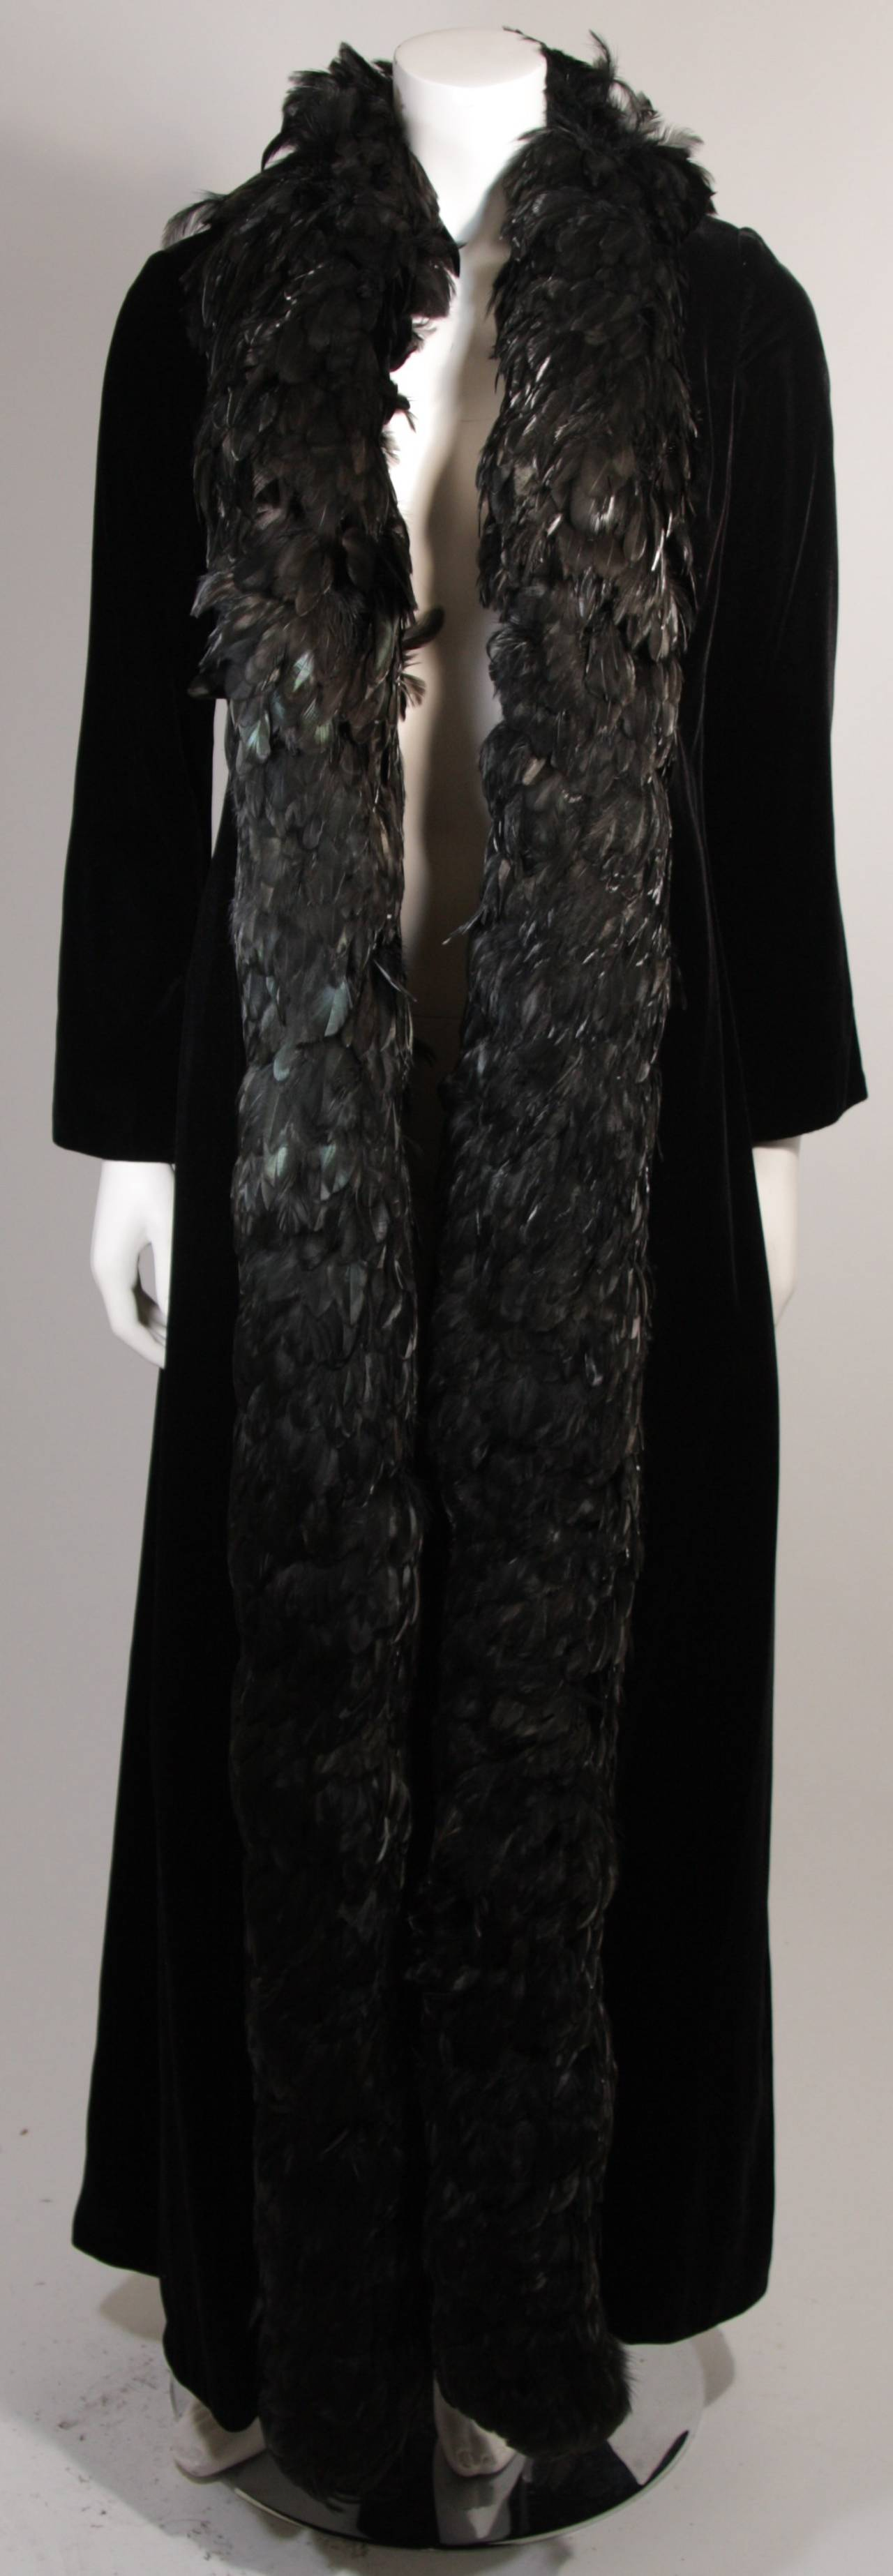 This is a striking black velvet coat trimmed with feathers designed by Victoria Royal of Hong Kong. Superb coat, shows some signs of discoloration throughout in certain lighting, lining is discolored/aged. Great design and style piece.   Measures